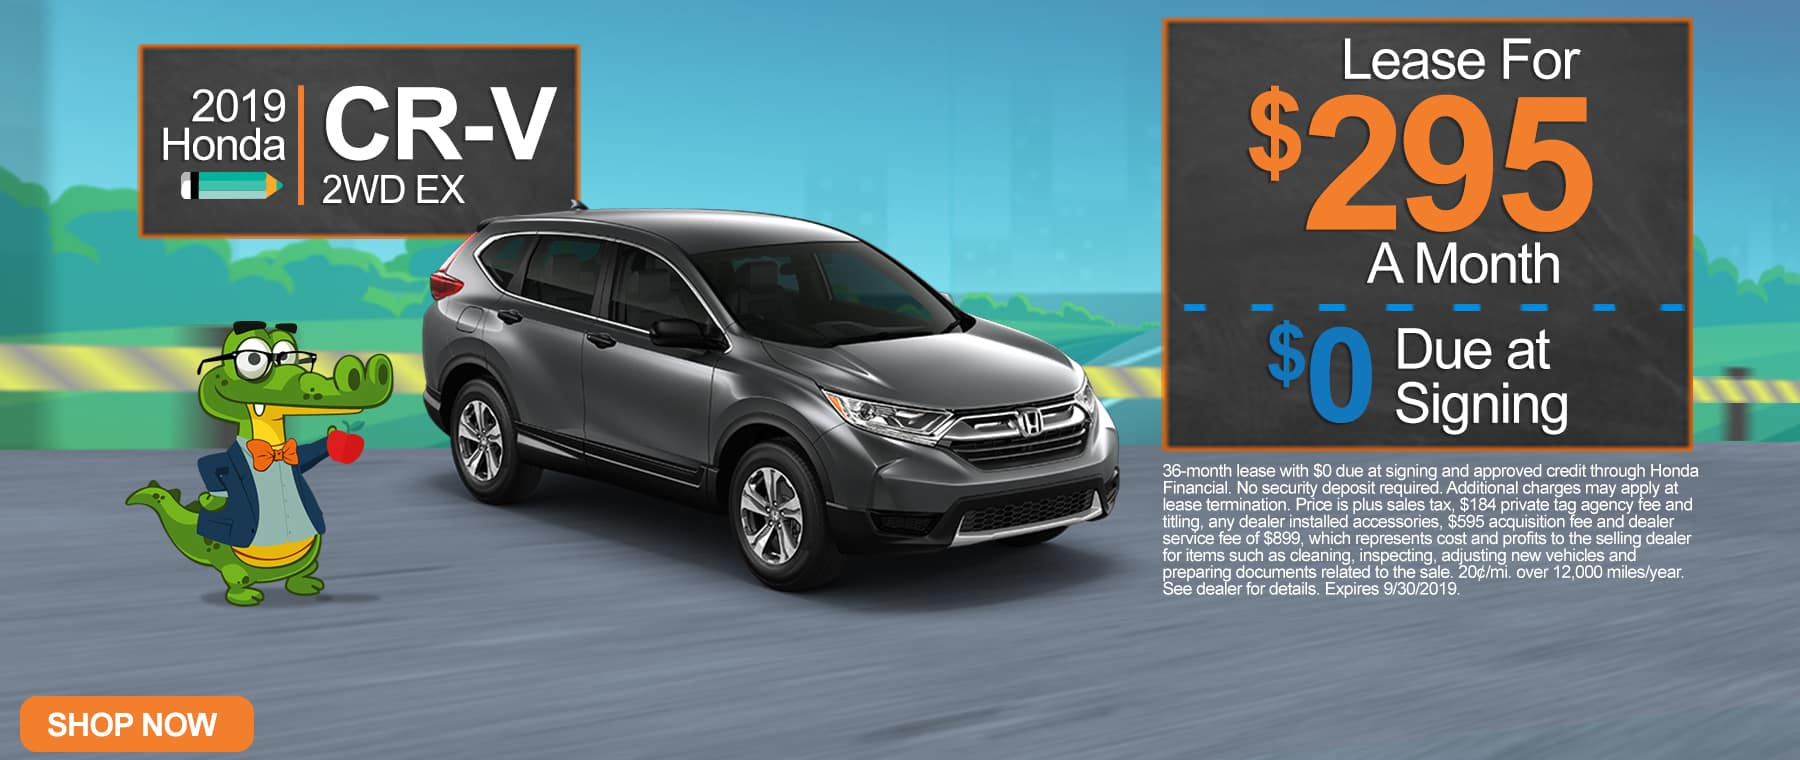 New 2019 Honda CR-V 2WD EX | $295 A Month | $0 Due At Signing